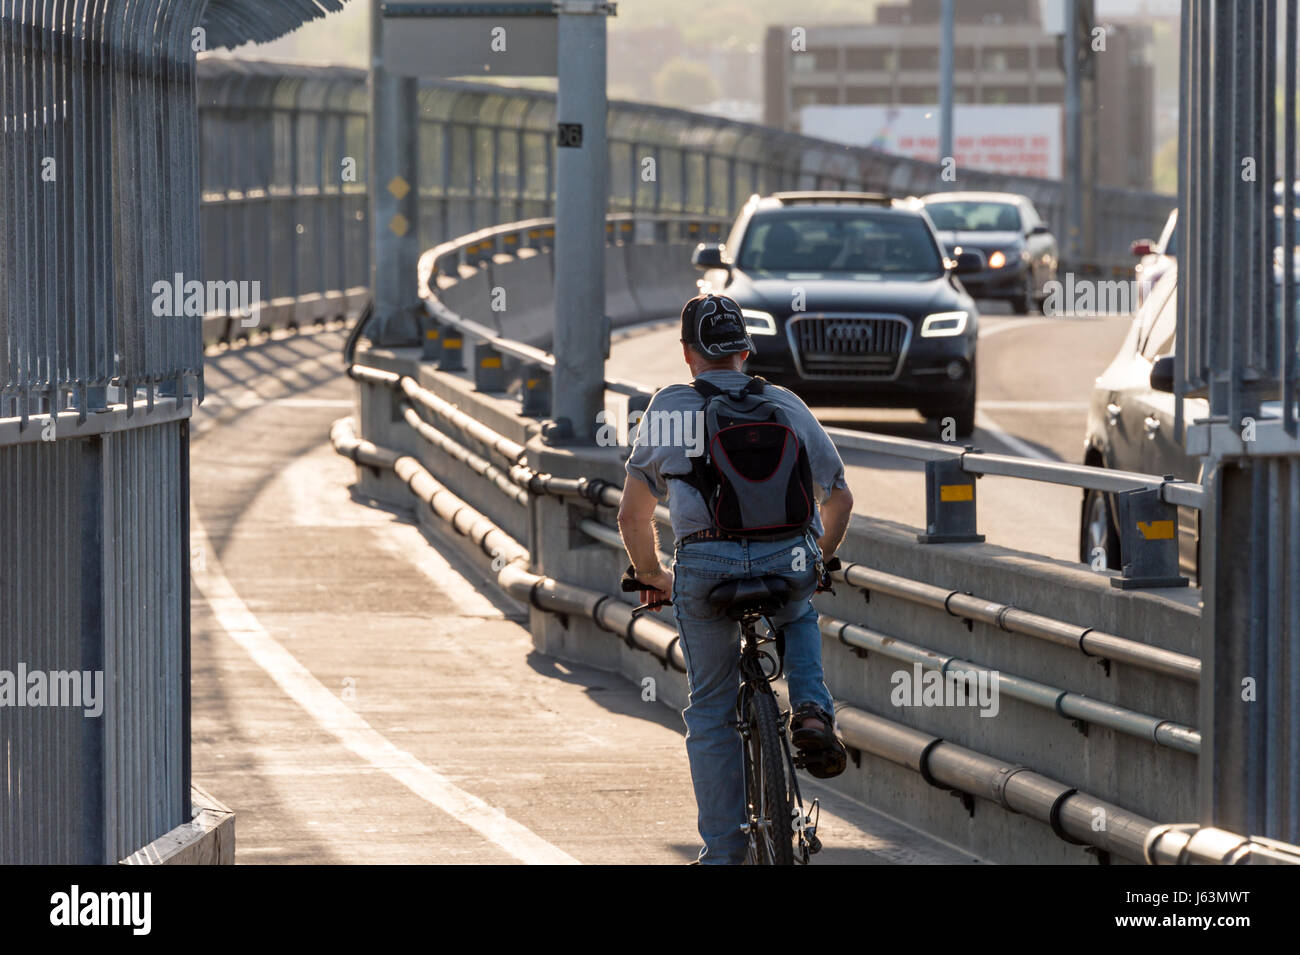 MONTREAL, CA - 18 May 2017: Cyclist on Jacques-Cartier Bridge's multipurpose path - Stock Image